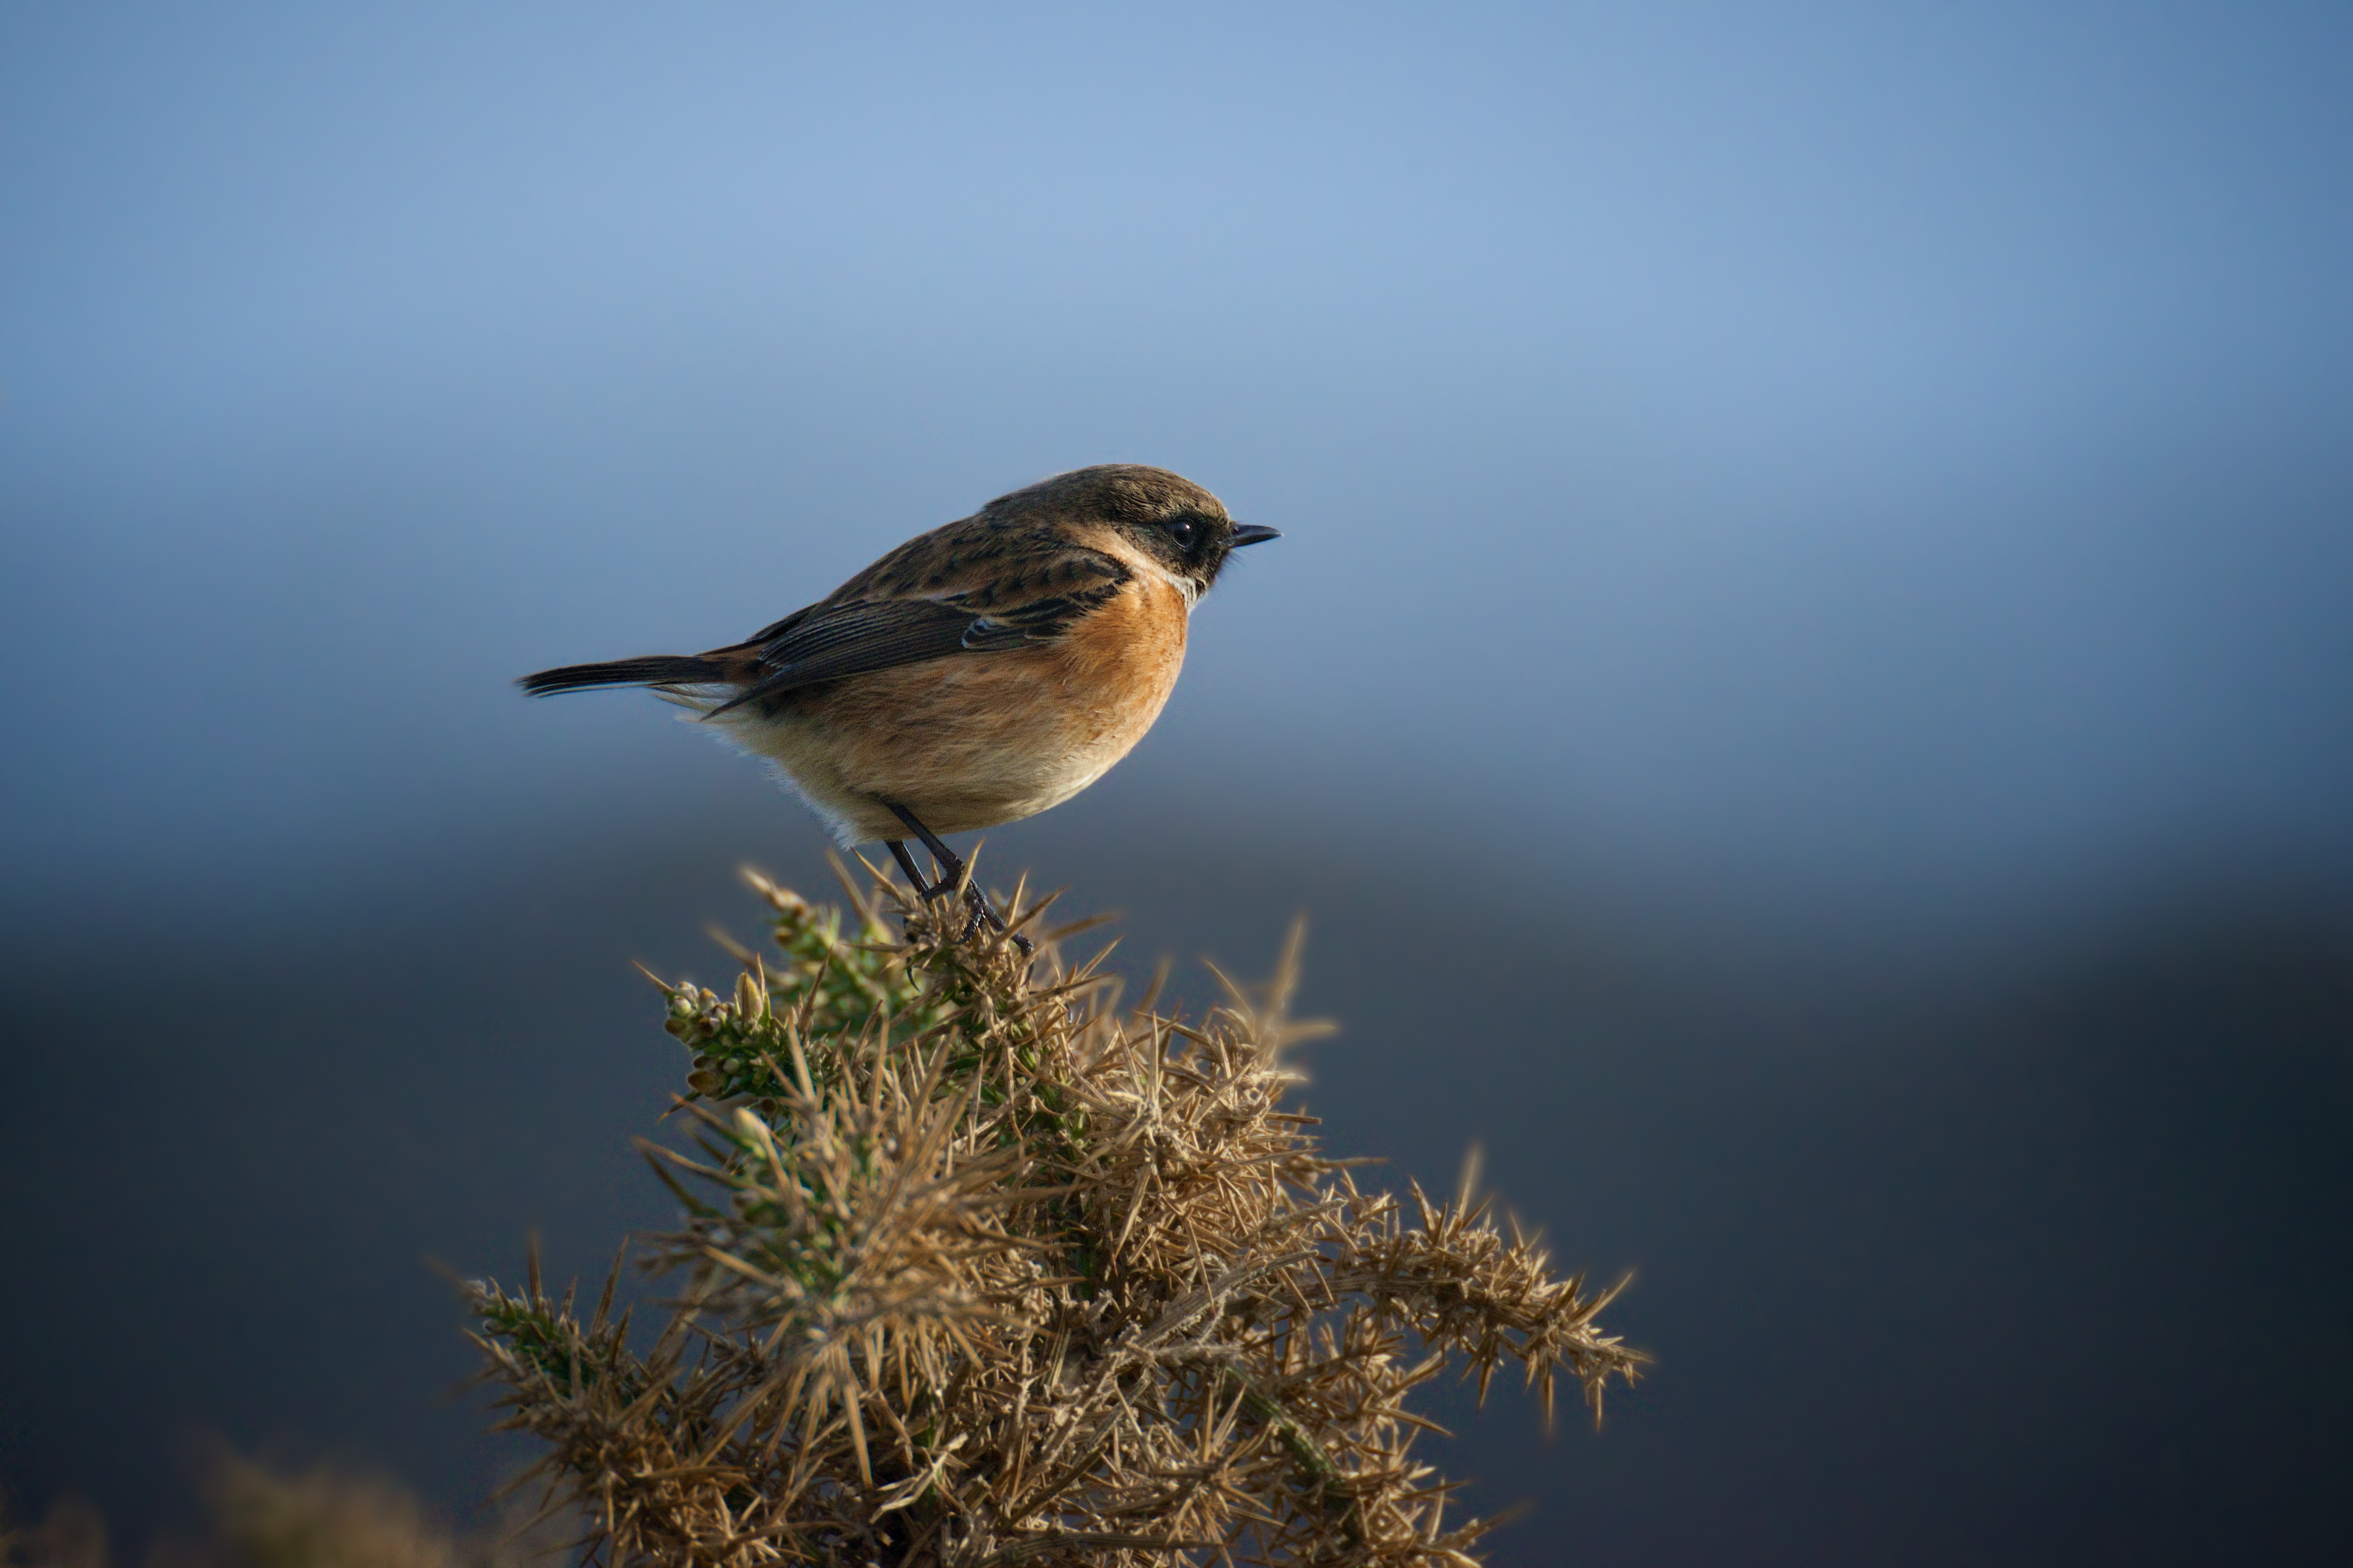 Stonechat 2-2014. Photo by Paul Marshall